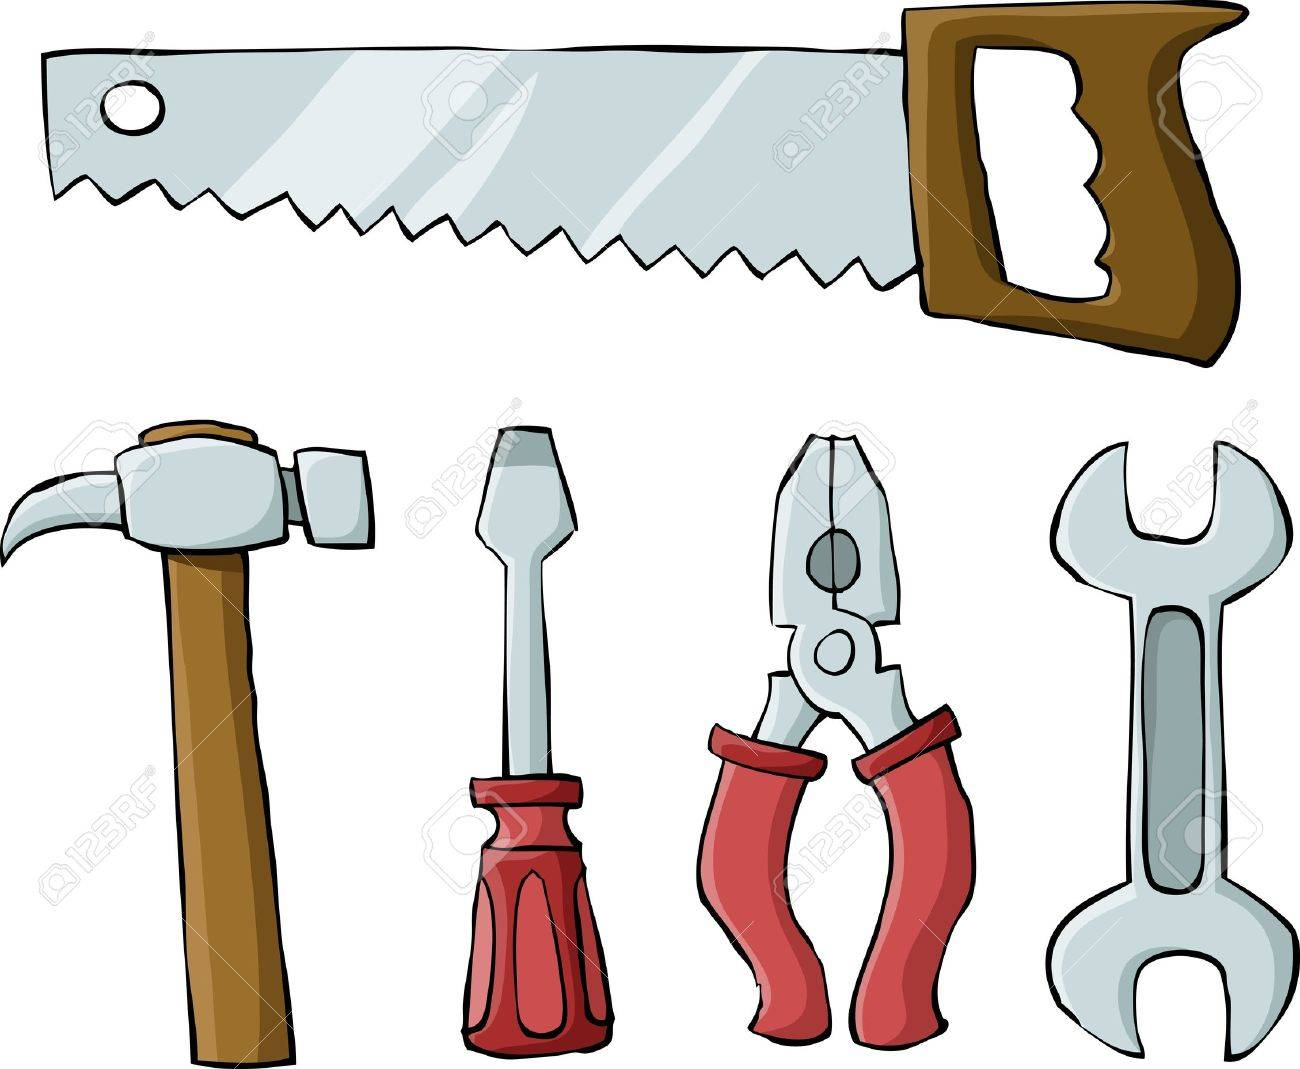 Tools on a white background, vector illustration Stock Vector - 10525944